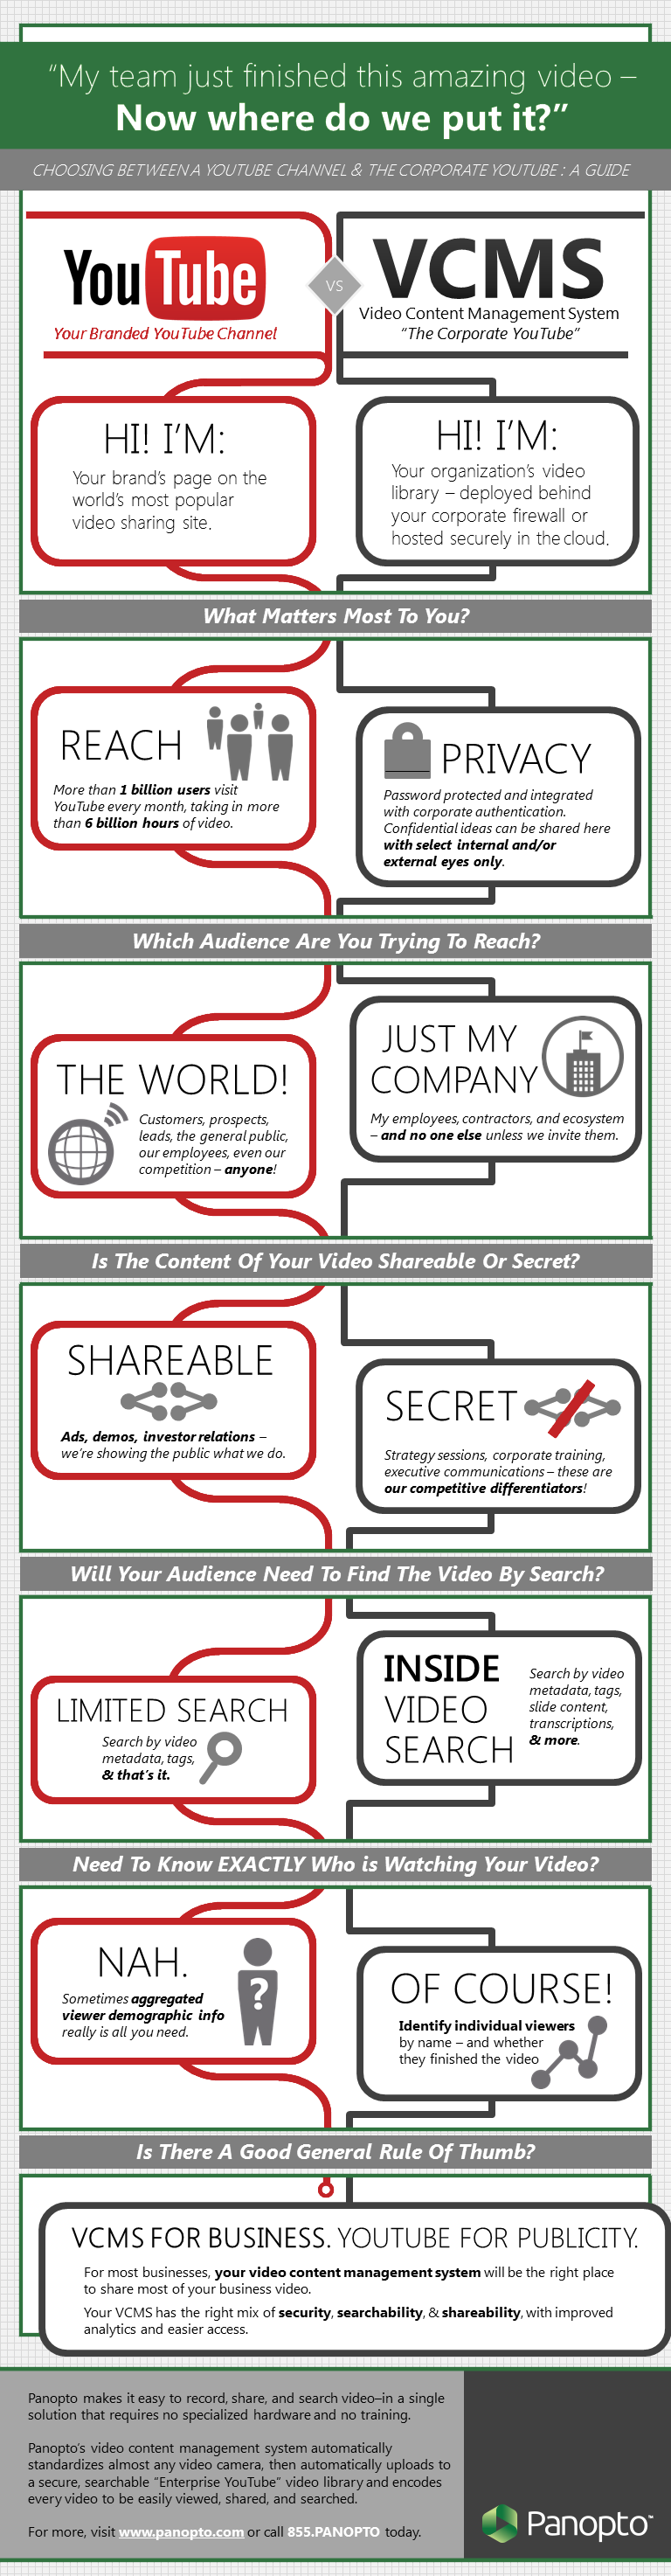 Panopto's quick corporate video hosting infographic